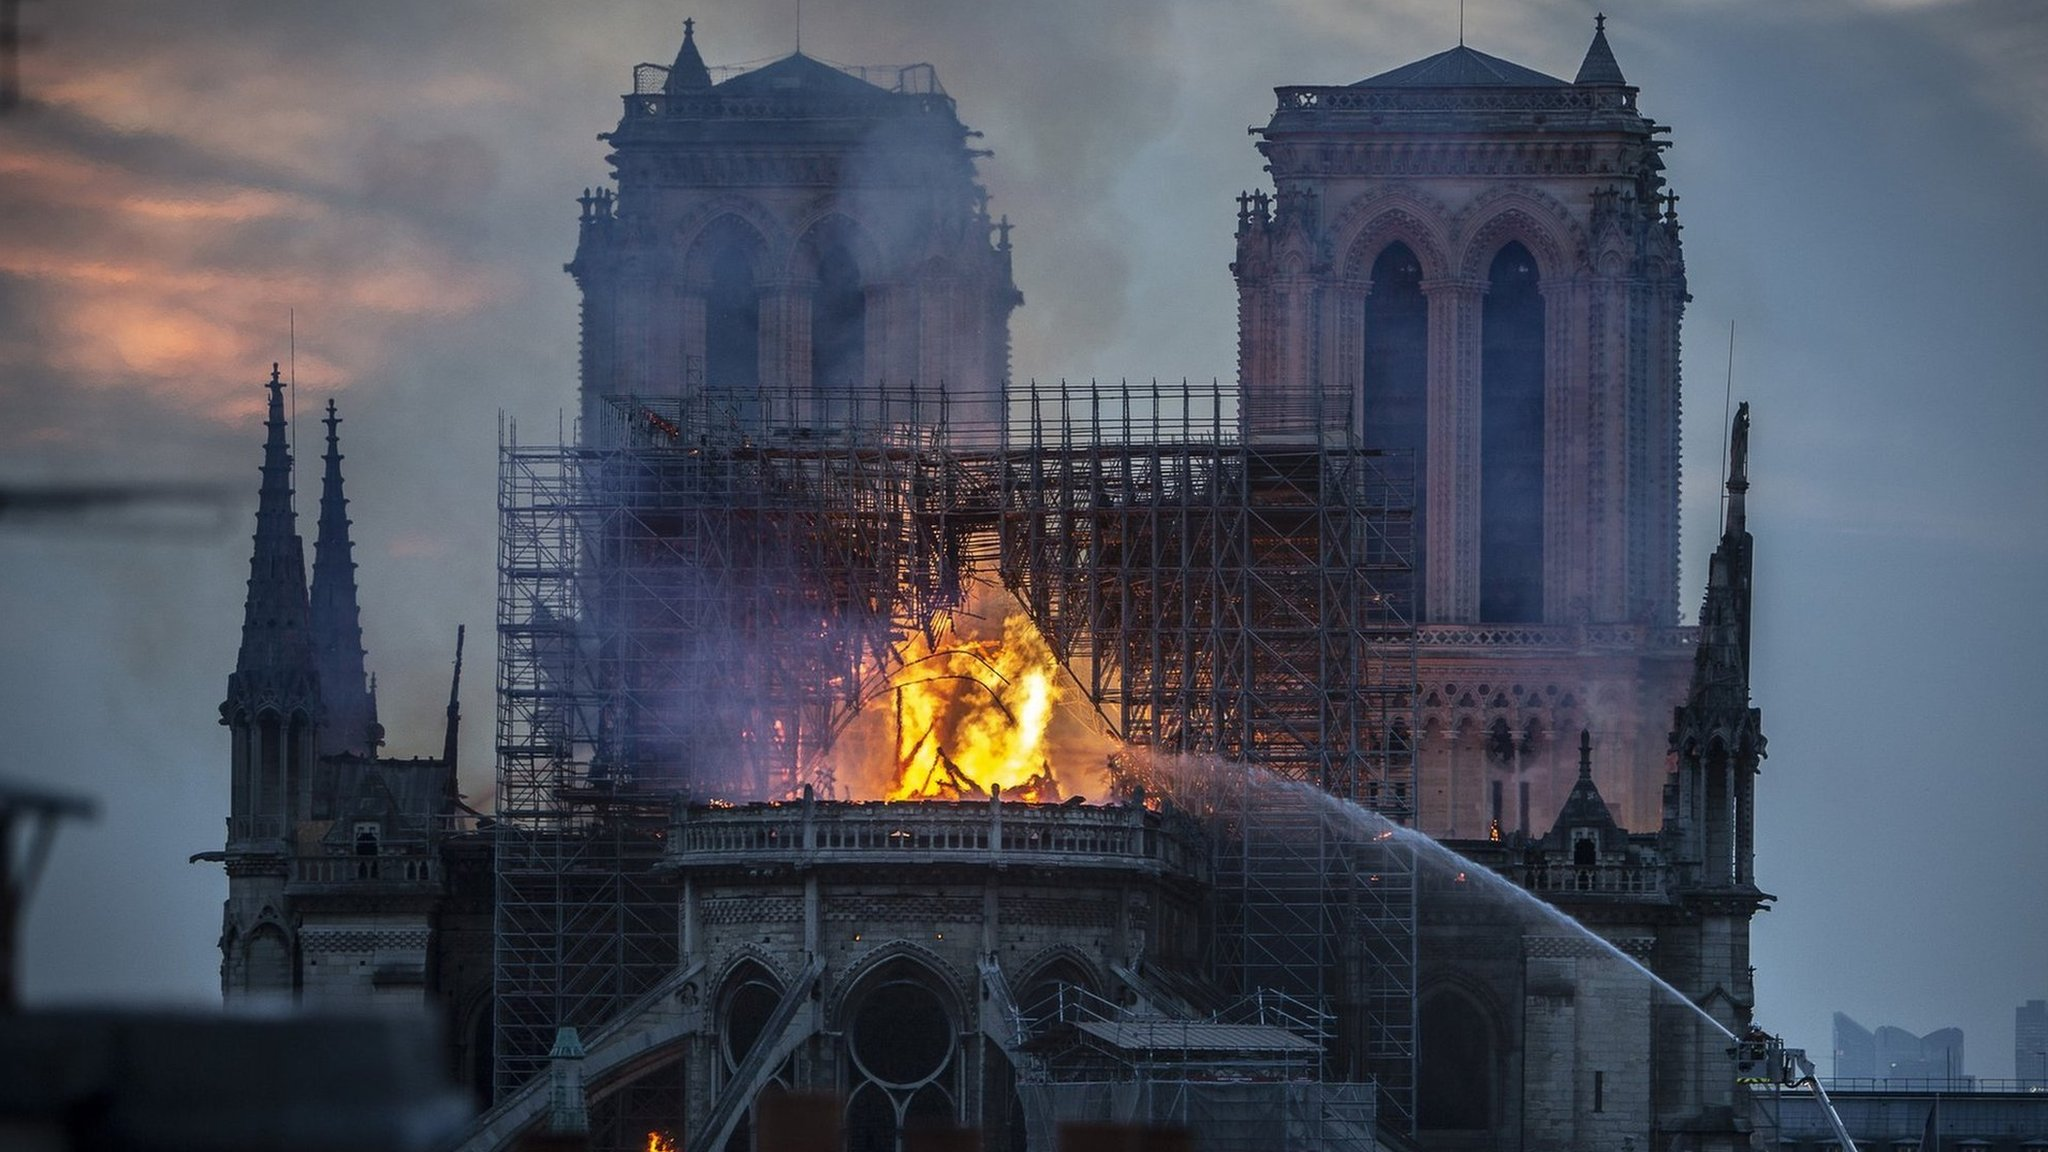 Truth or Not? Notre-Dame fire: Macron pledges to reconstruct cathedral